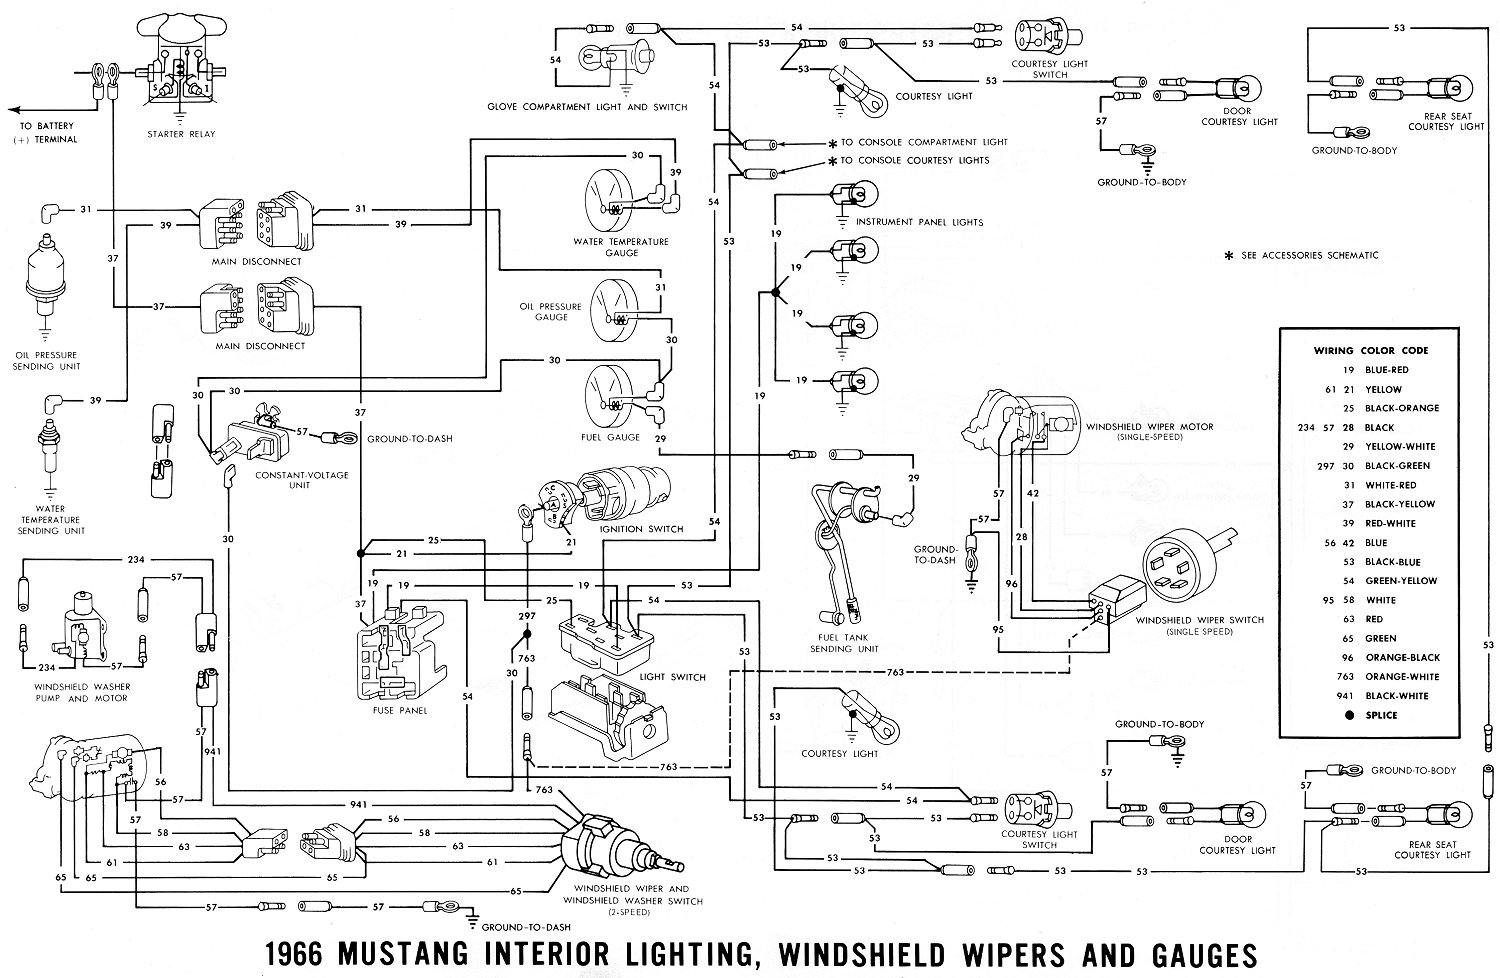 66inter1 1966 mustang wiring diagrams average joe restoration 1966 mustang under dash wiring harness at crackthecode.co